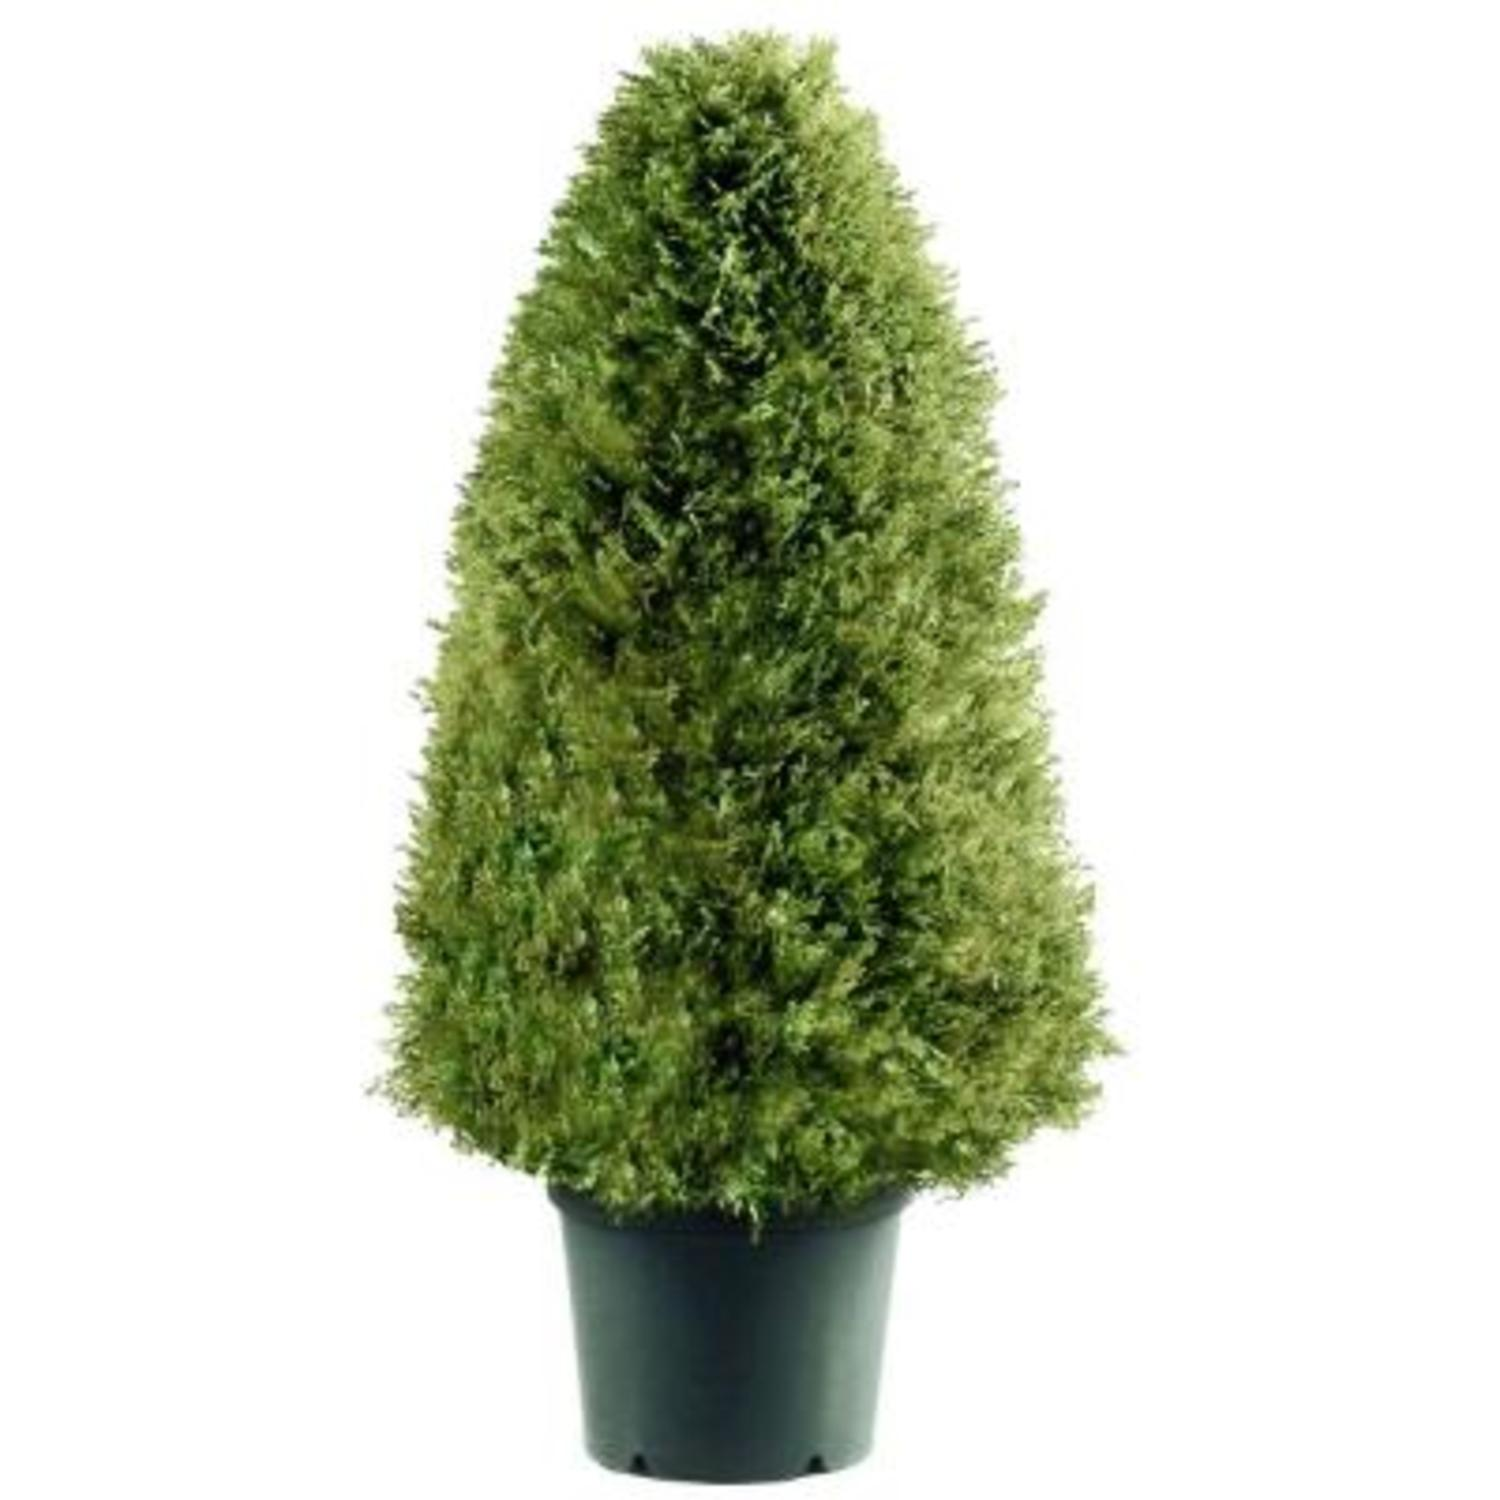 "48"" Tall Artificial Green Upright Juniper Shrub with Round Pot"